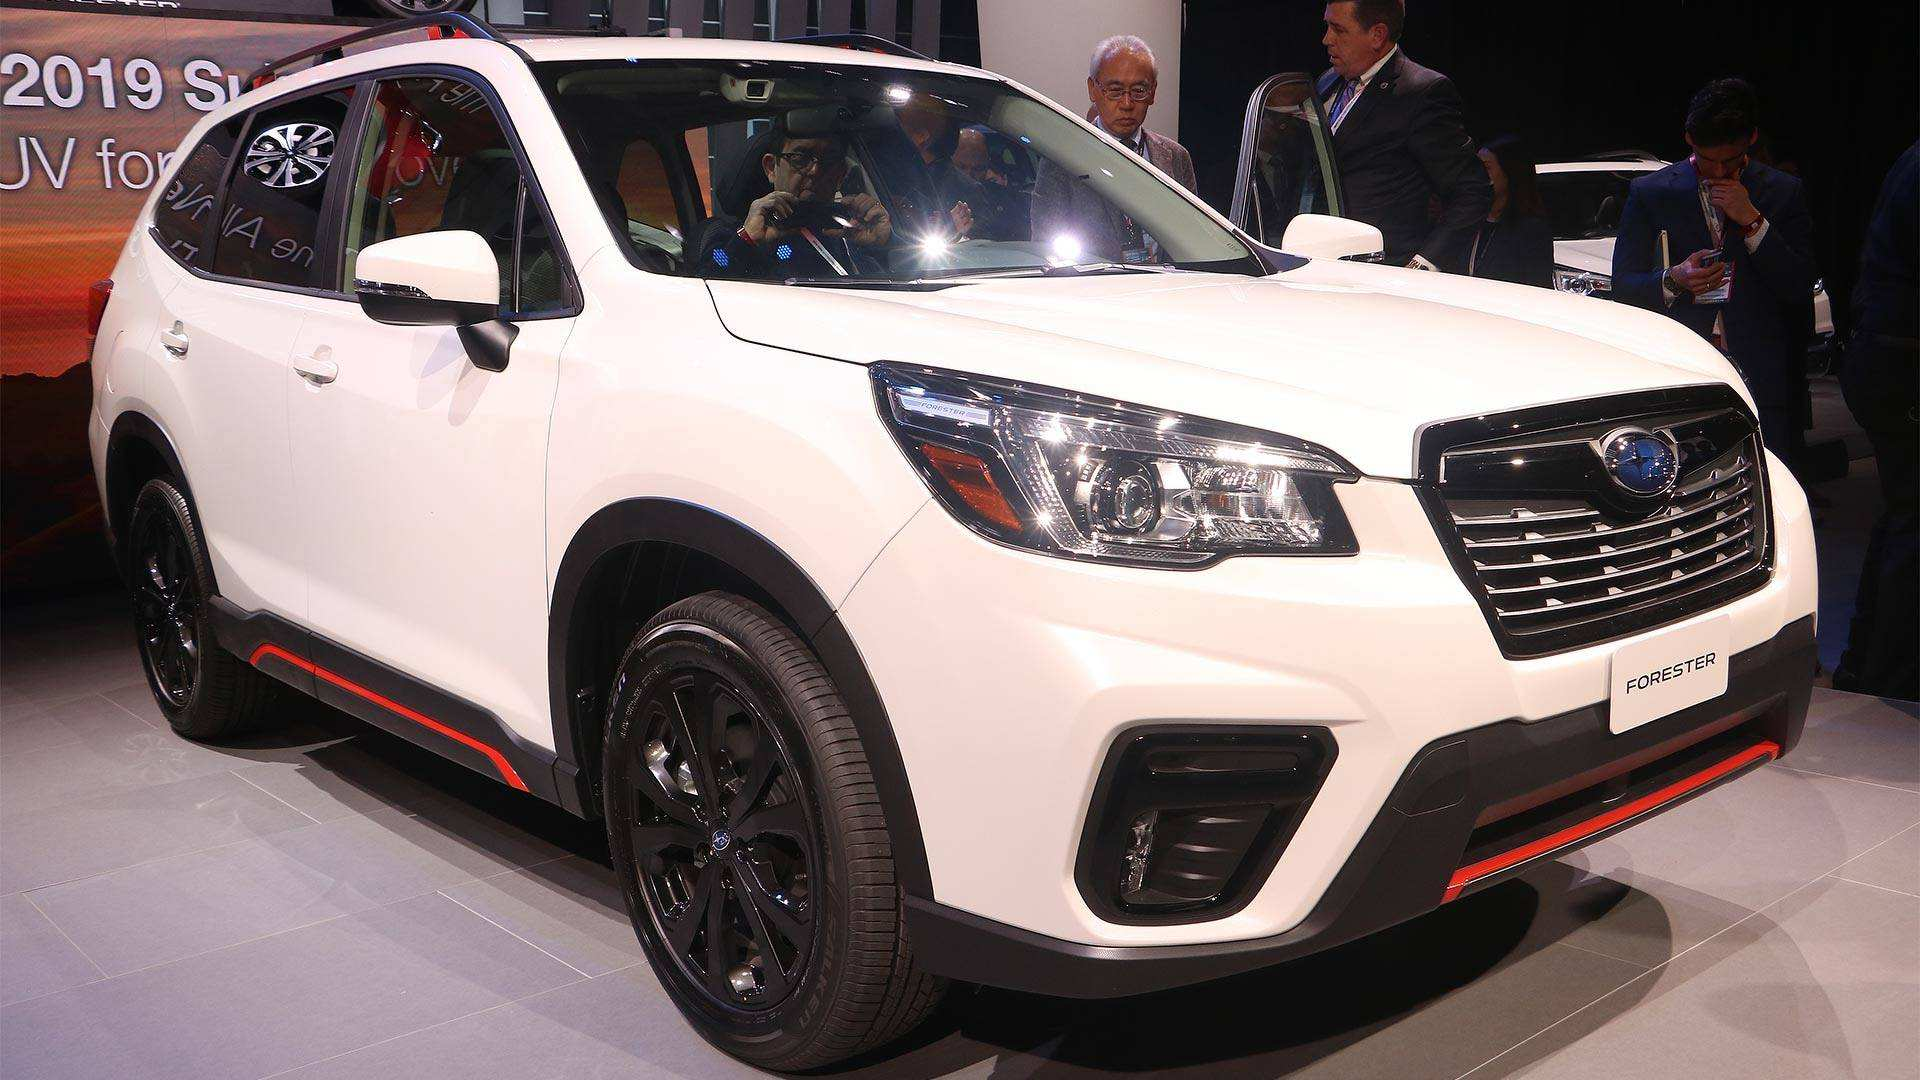 29 Gallery of Subaru Forester 2019 News Price and Review by Subaru Forester 2019 News